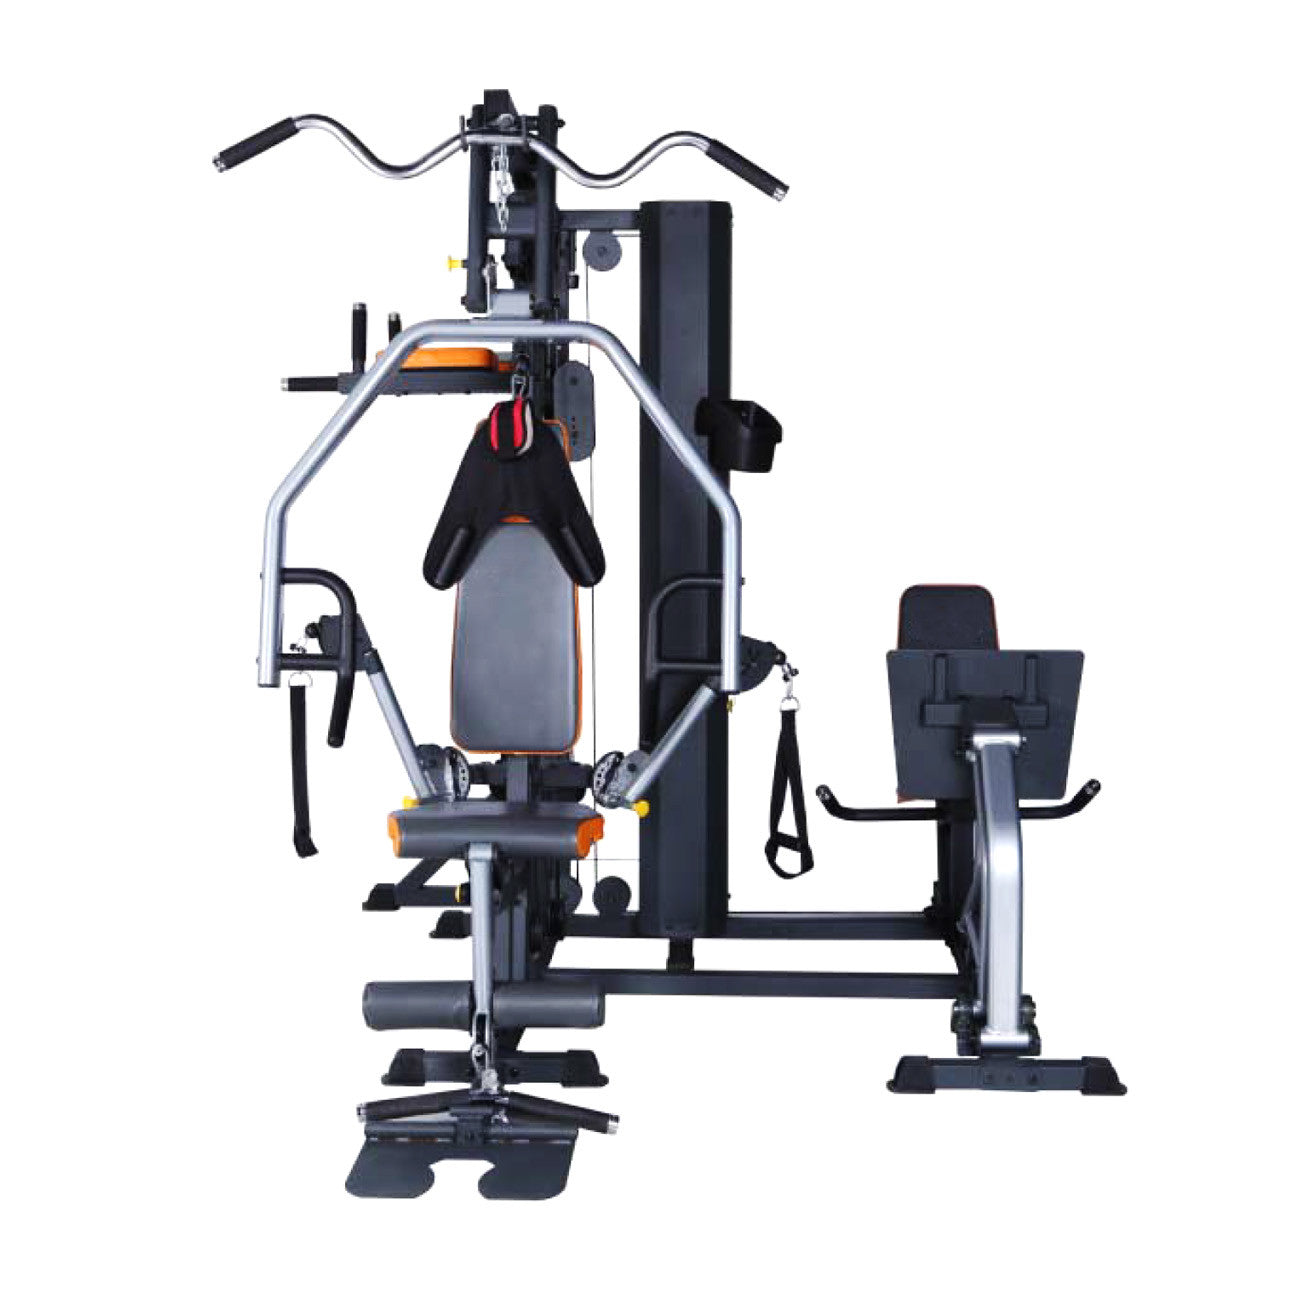 ae70f2579cf Propel Fitness Multi Gym SM 1.40 - FitnessOne Store ...